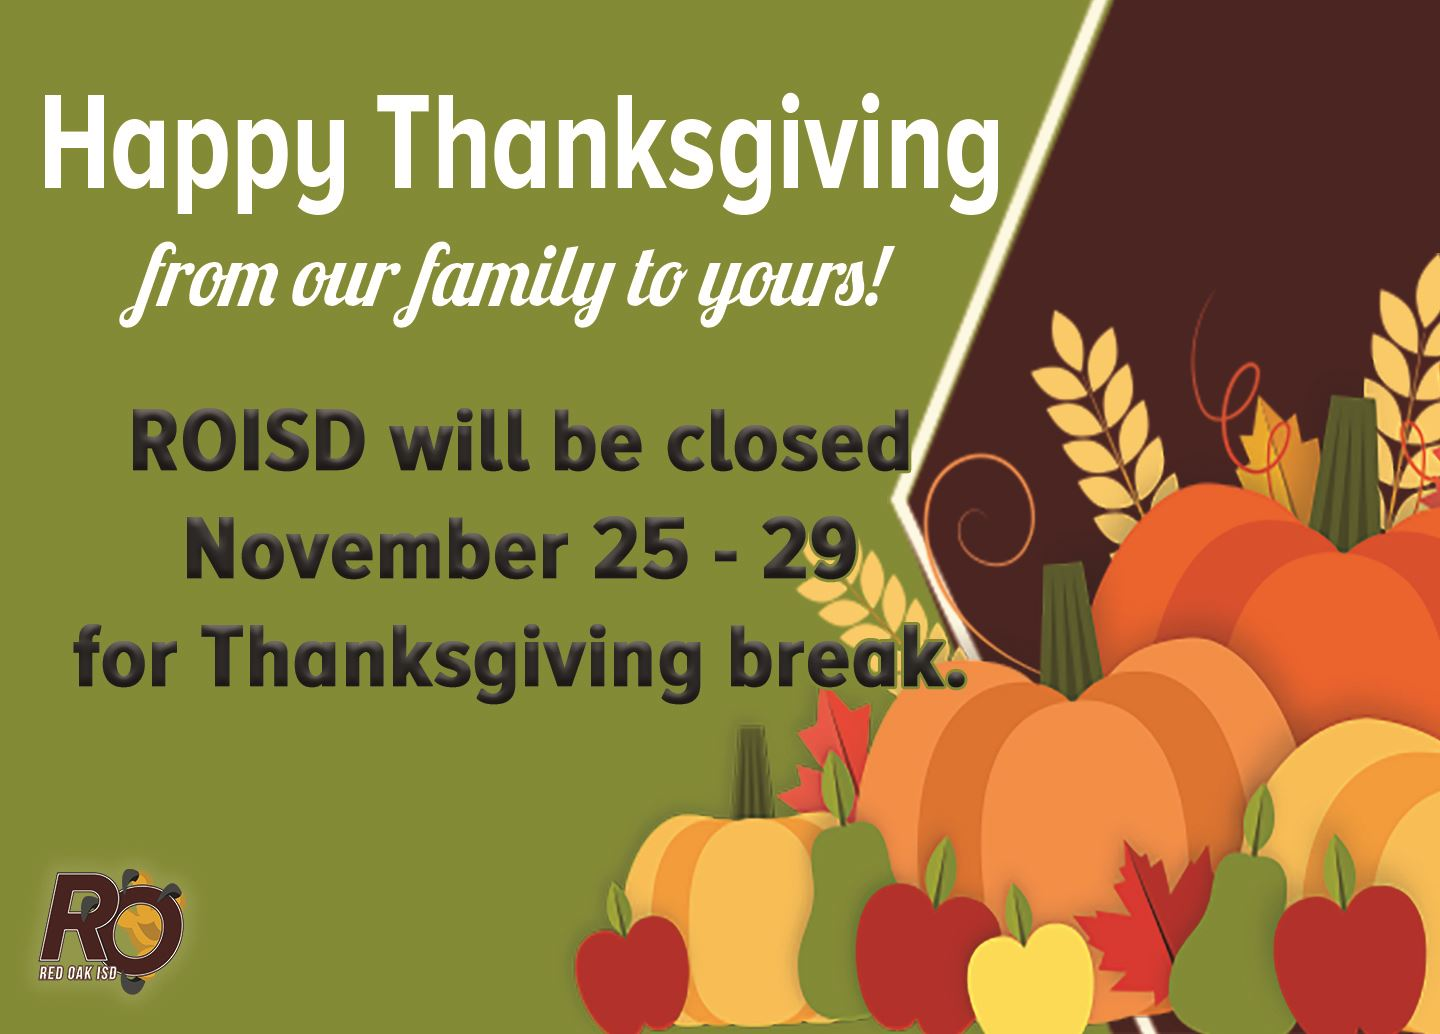 Happy Thanksgiving! ROISD will be closed for Thanksgiving Break from November 25 - 29.